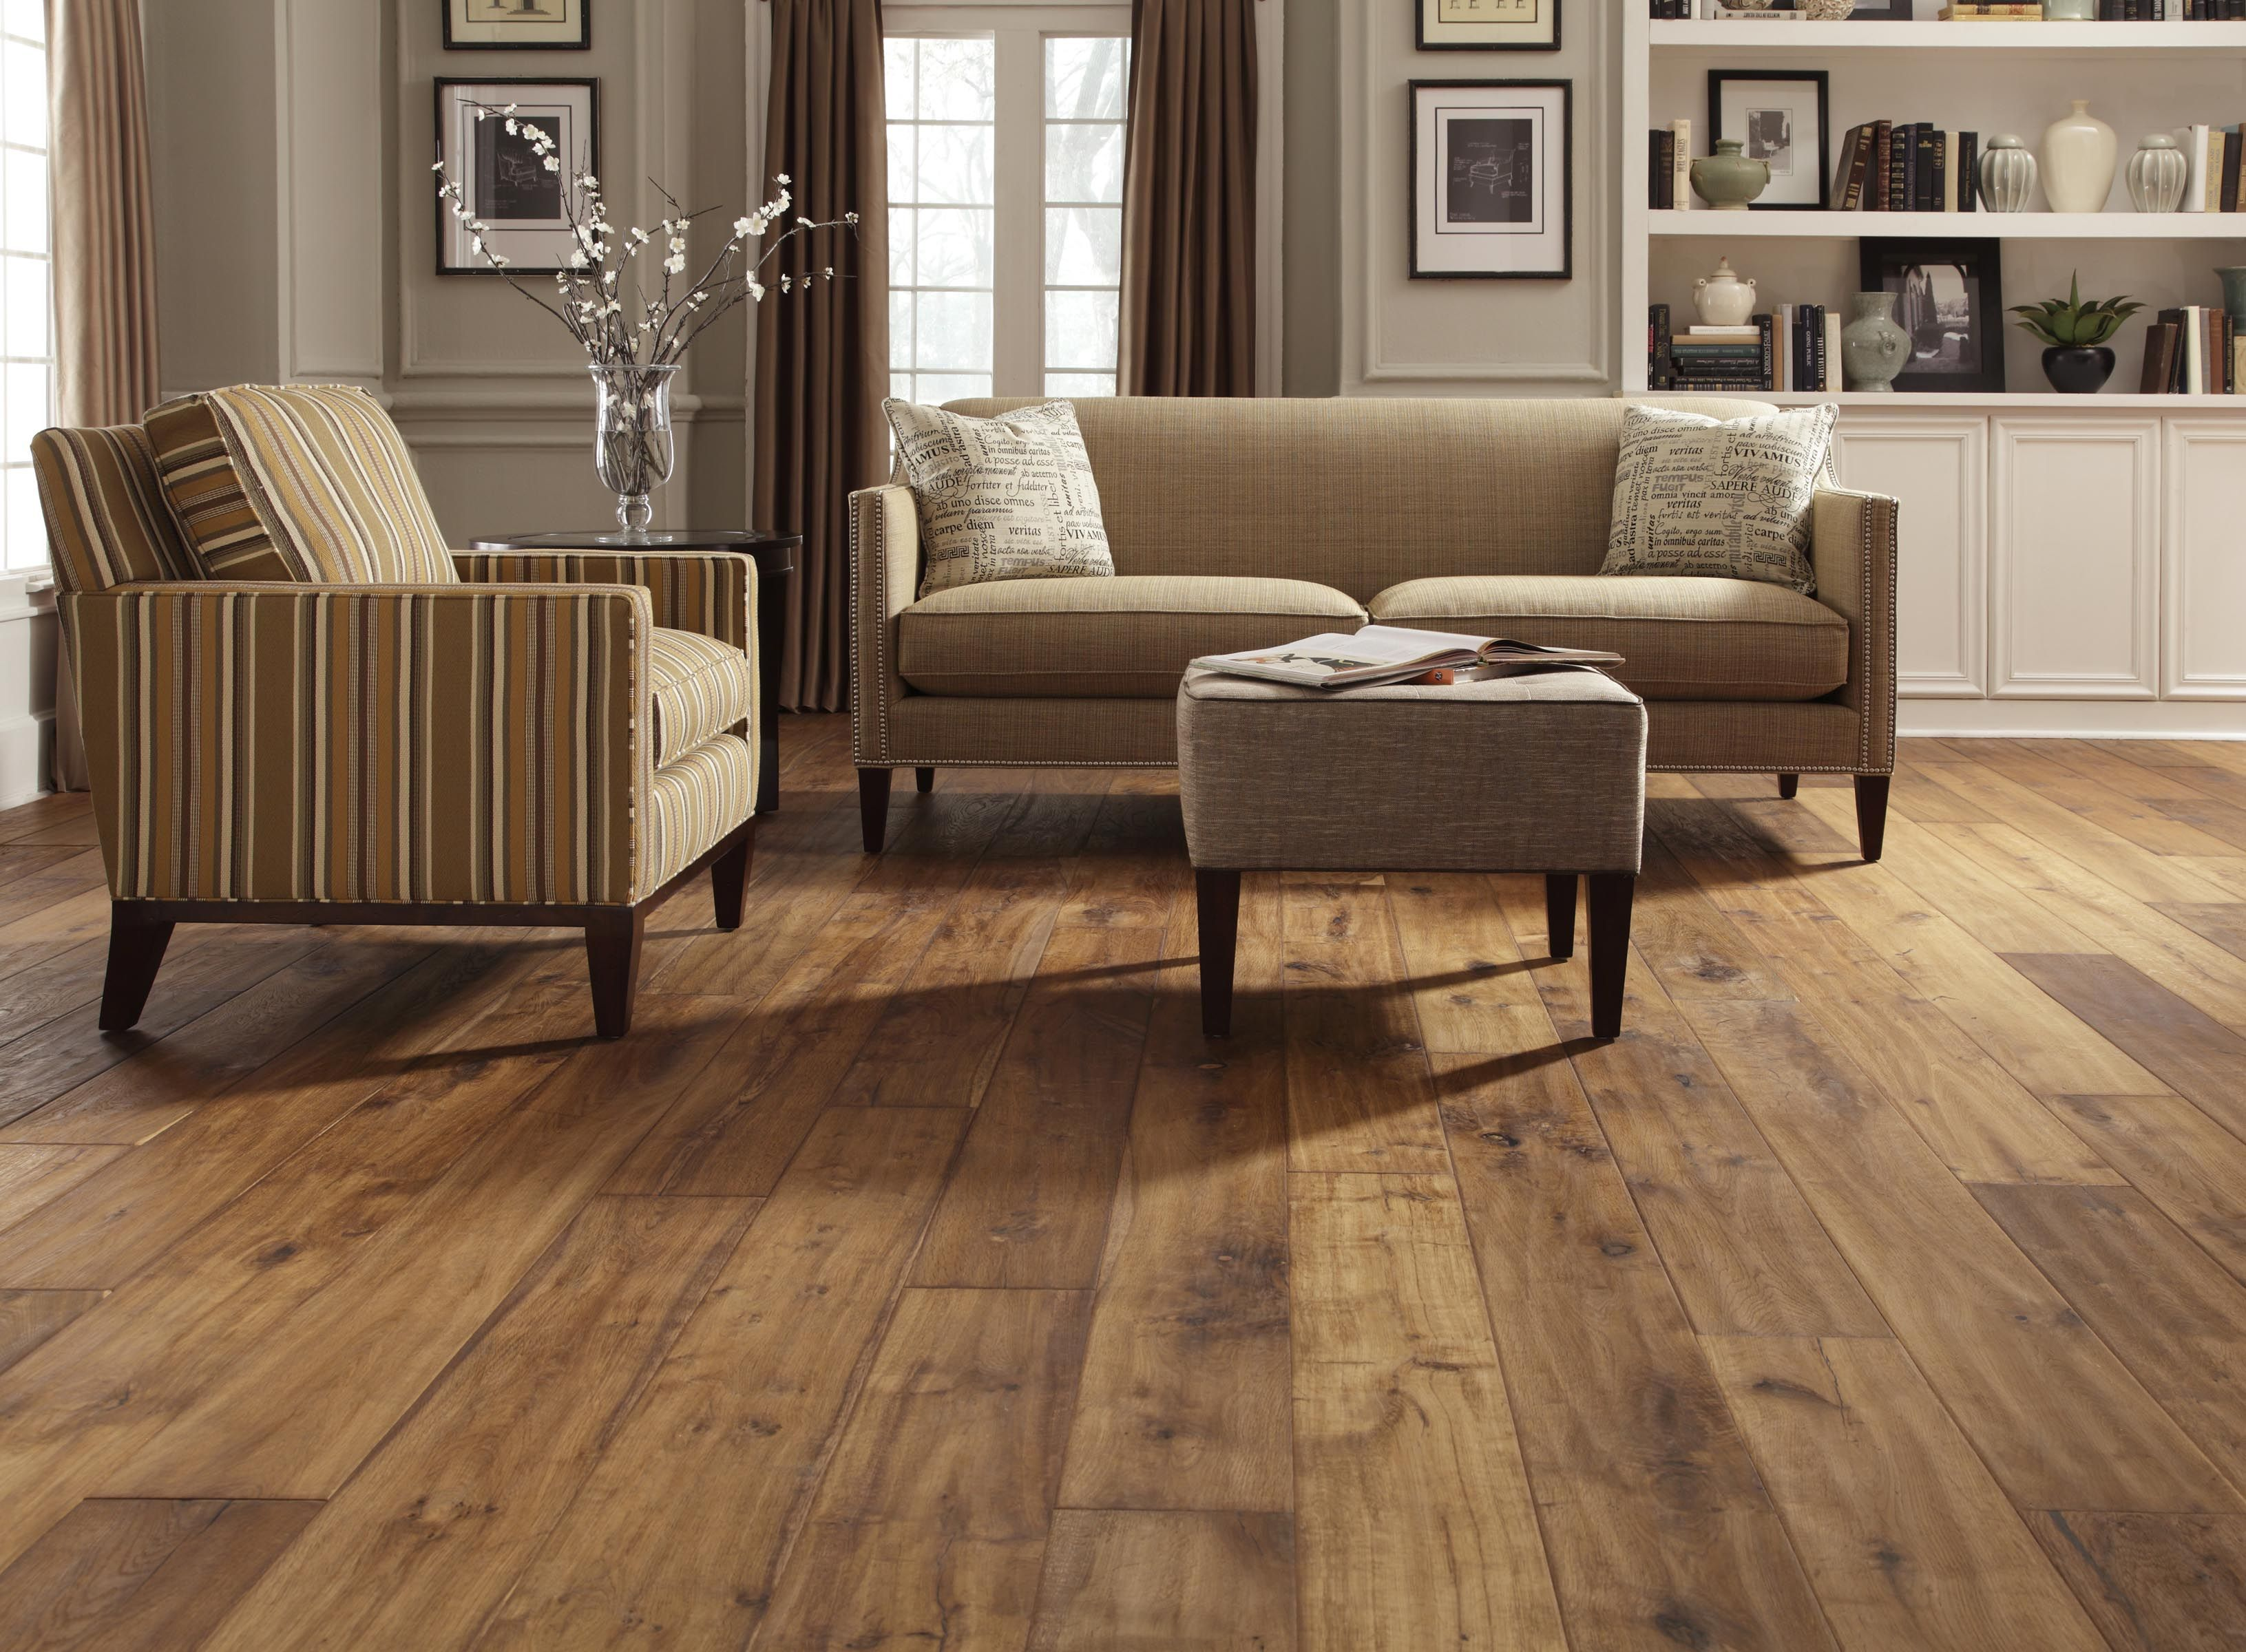 rustic laminate flooring kitchen laminate flooring Wide plank laminate Love this color or darker Love the natural colors